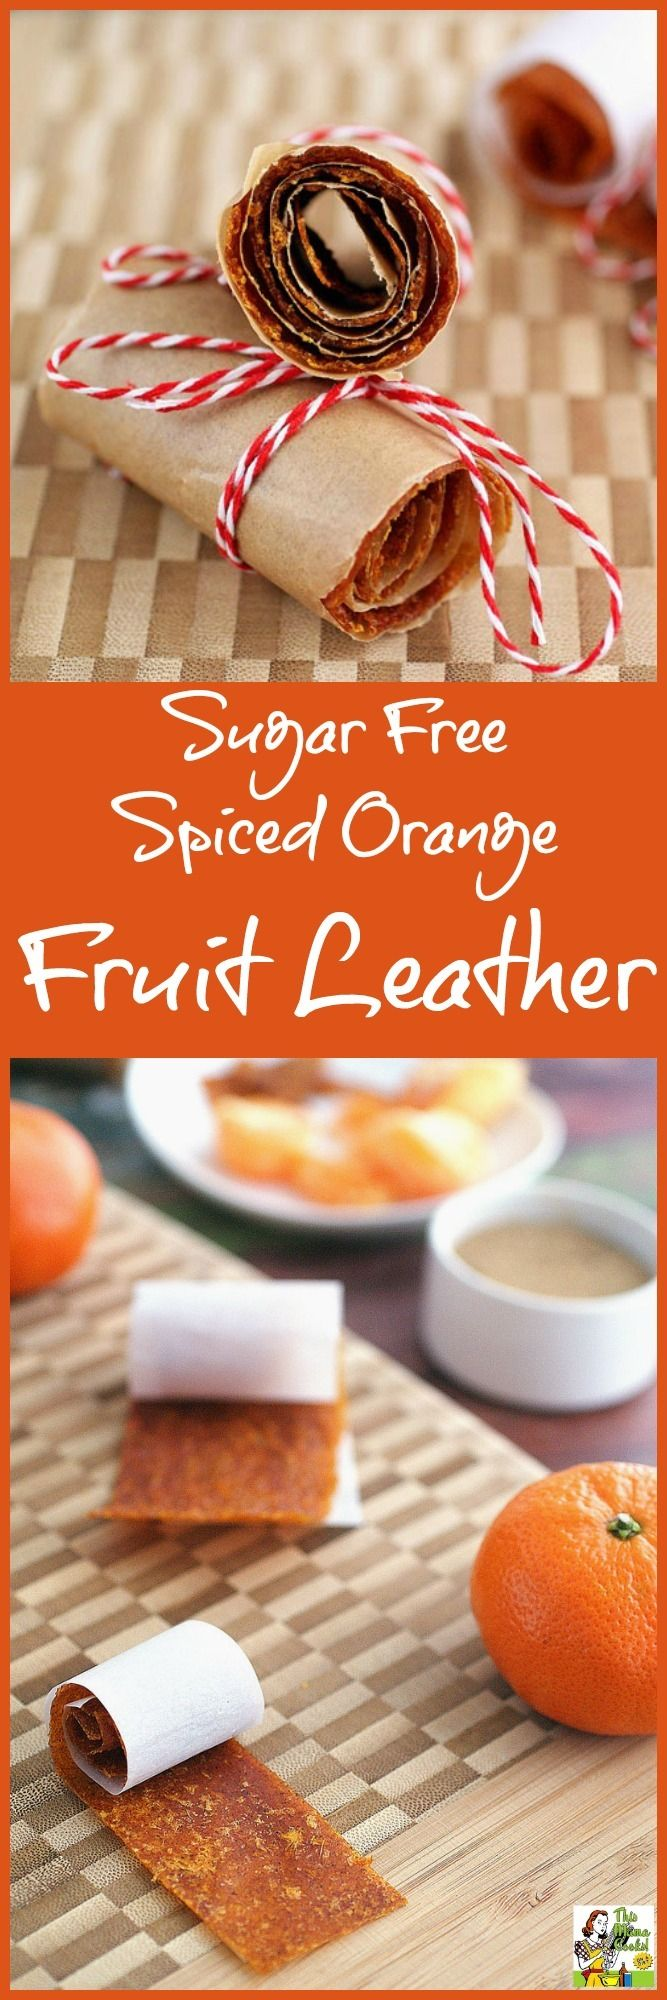 healthy fruit dip recipe fruit leather healthy